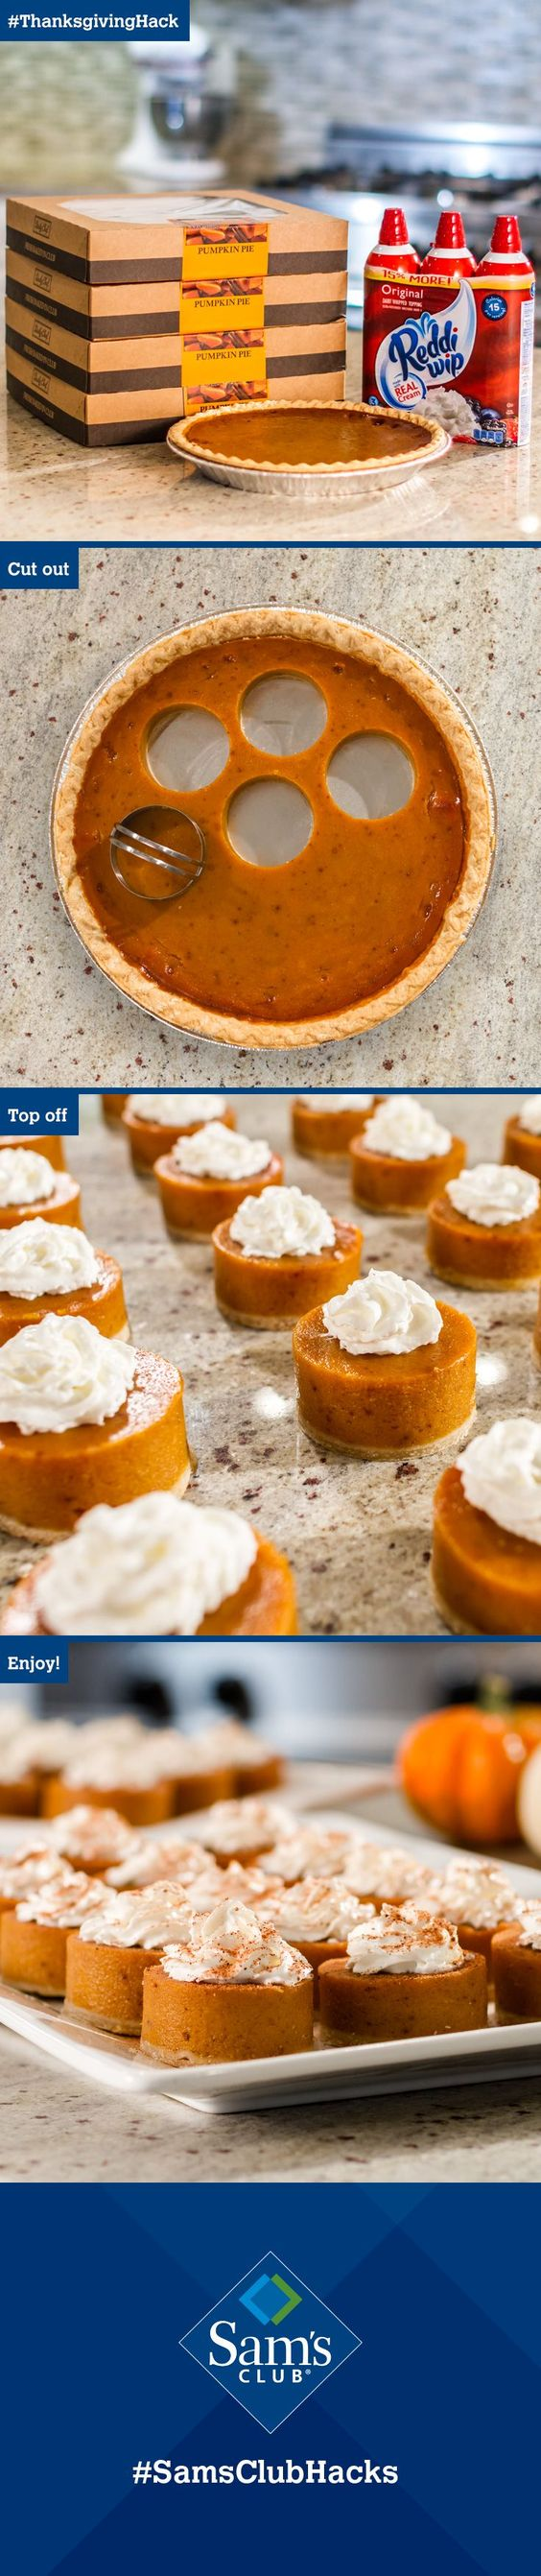 We're loving this genius trick for making mini pies! No more fighting over the biggest slice!: